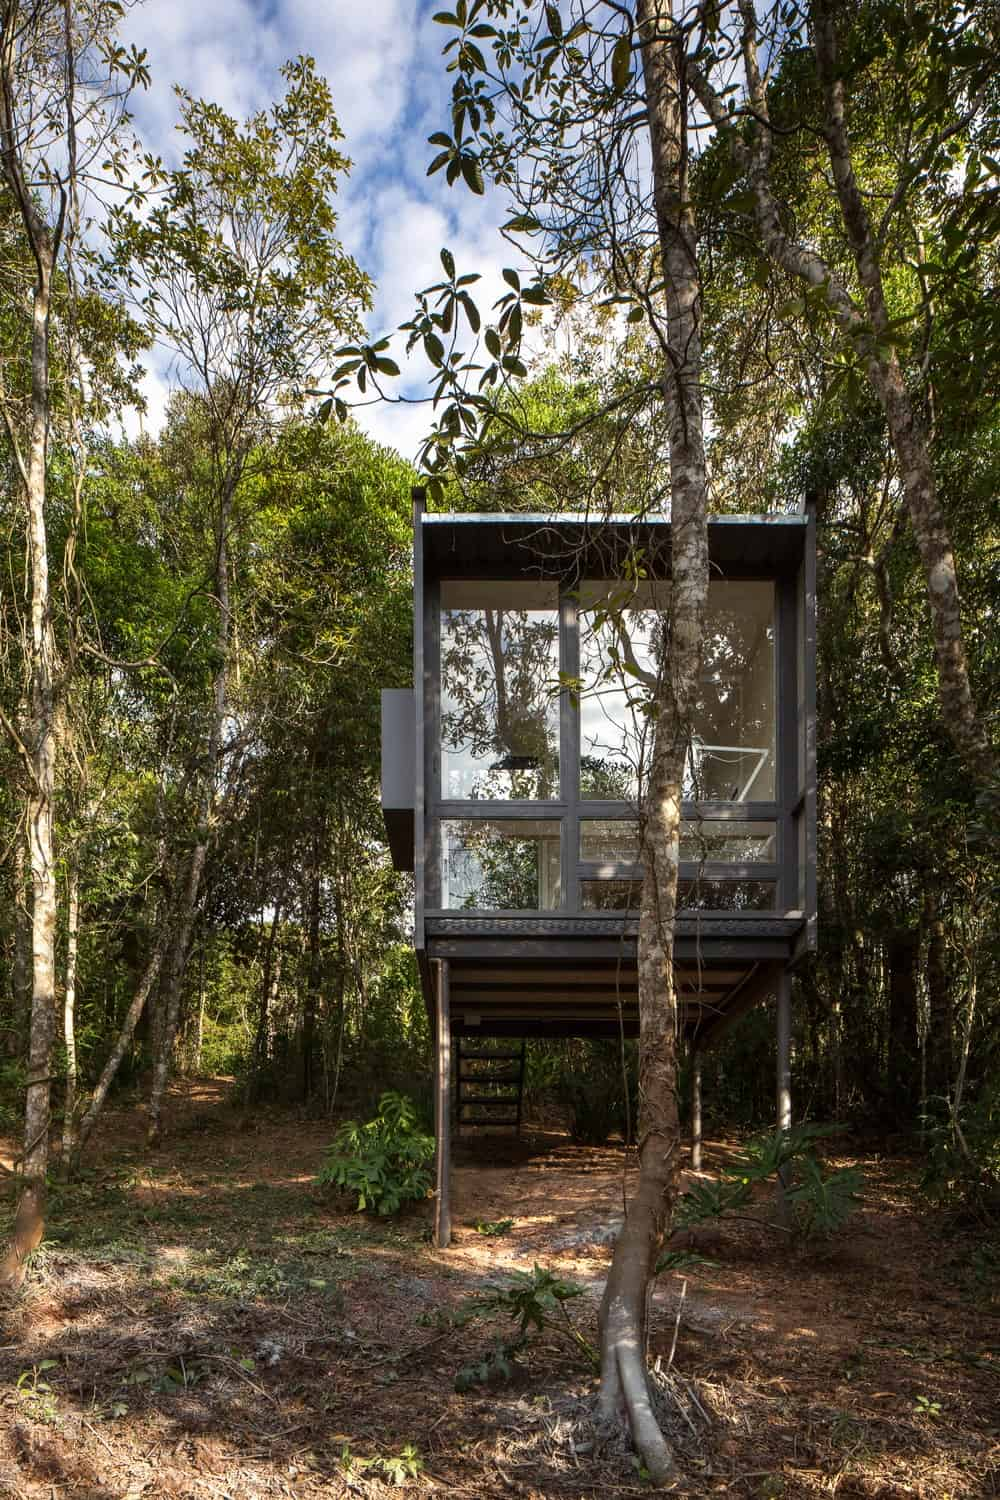 This is a view of the house with a large glass wall, stilts and a staircase surrounded by tall trees and shrubs.